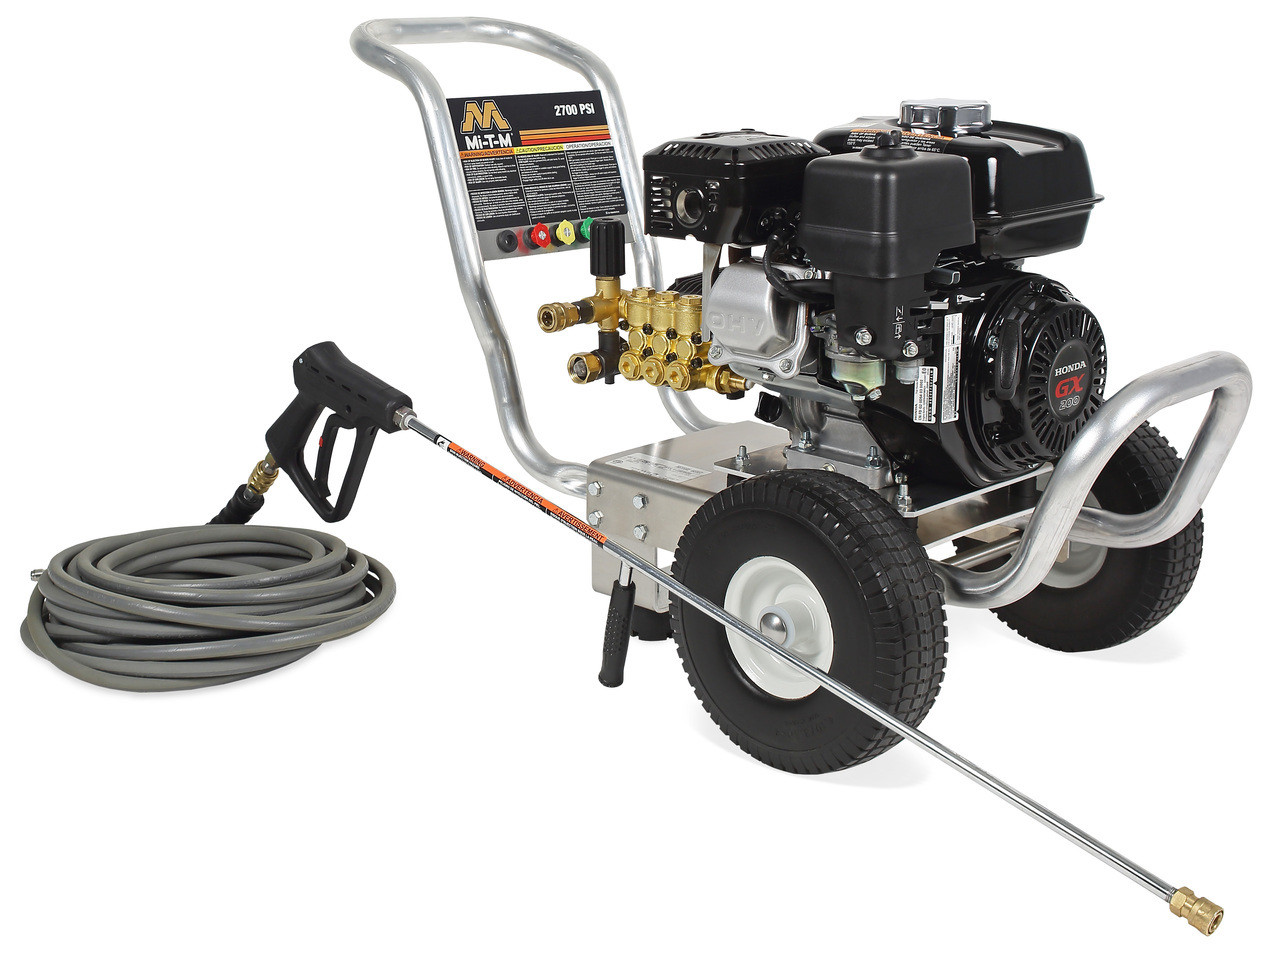 2700 PSI Pressure Washer Rental - North Georgia Airless